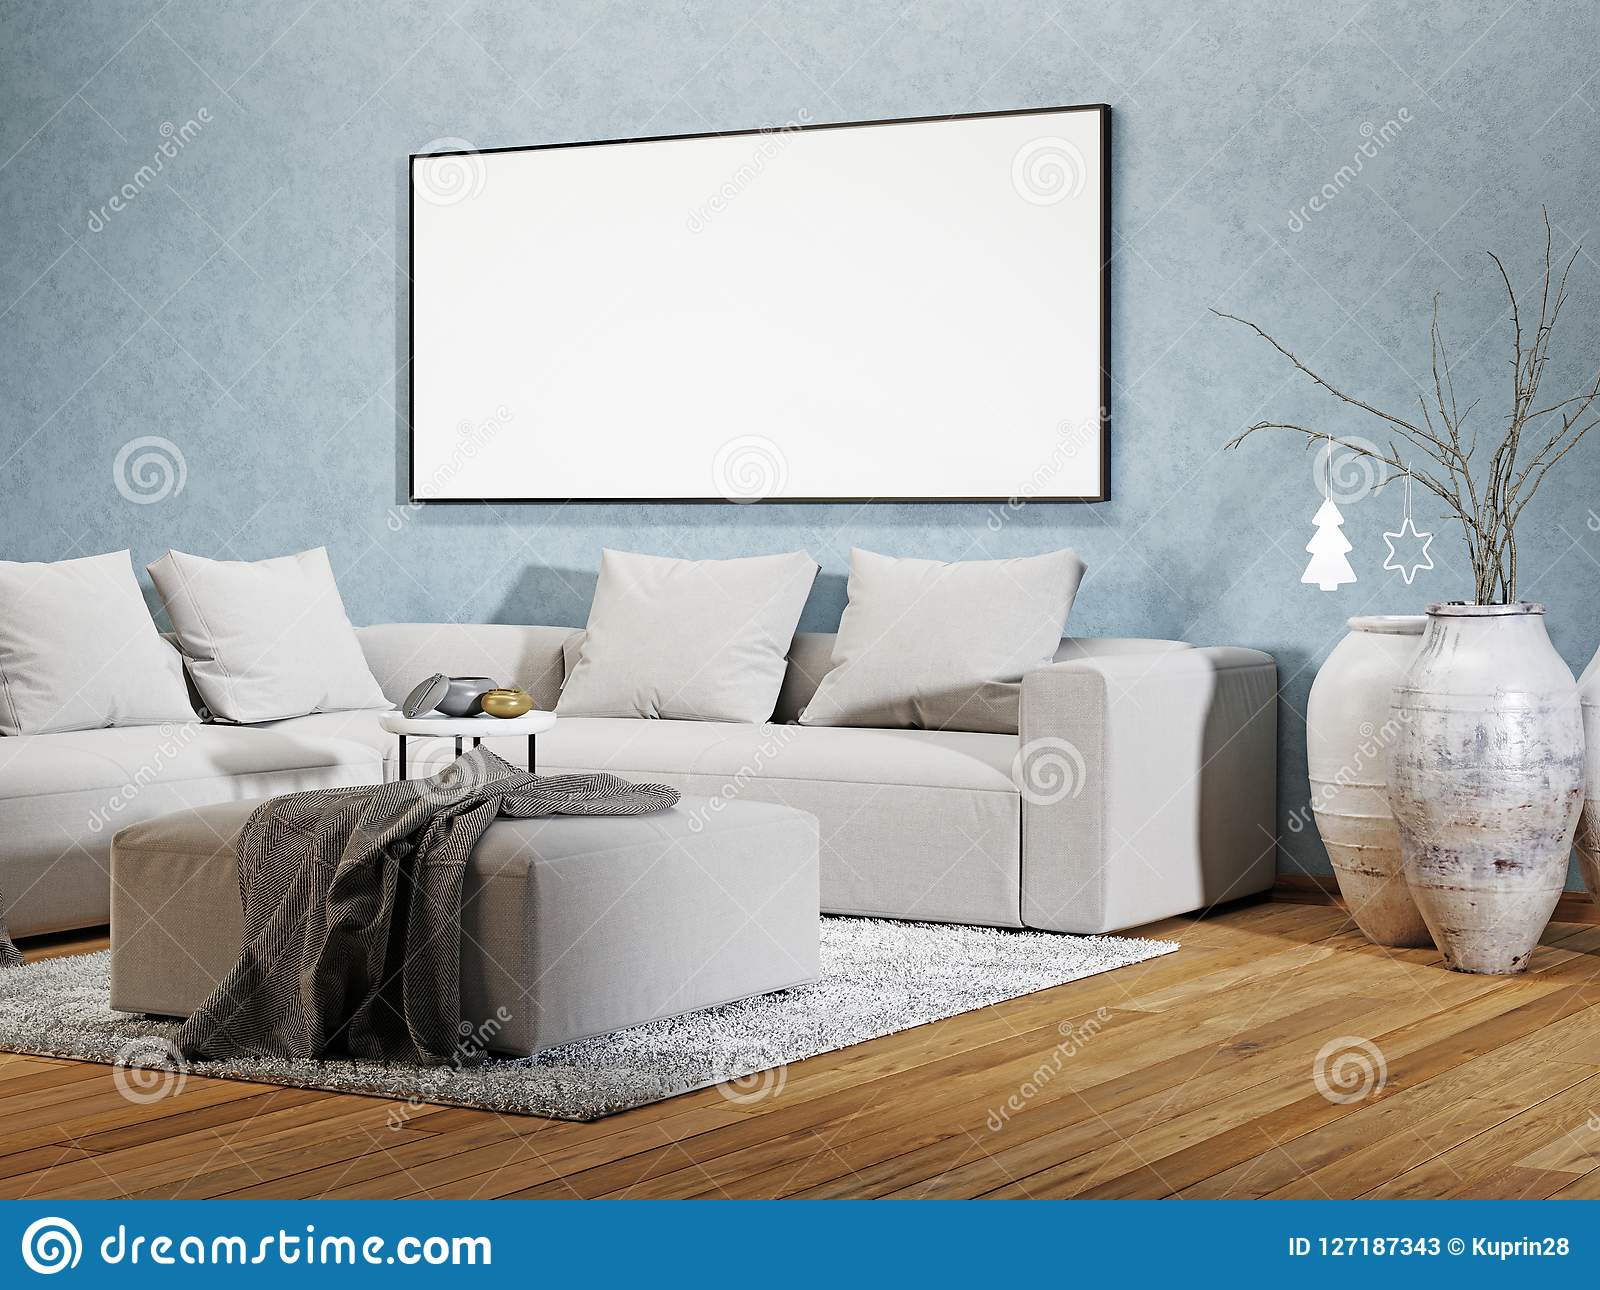 Modern interior of living room foto poster wandbilder bei